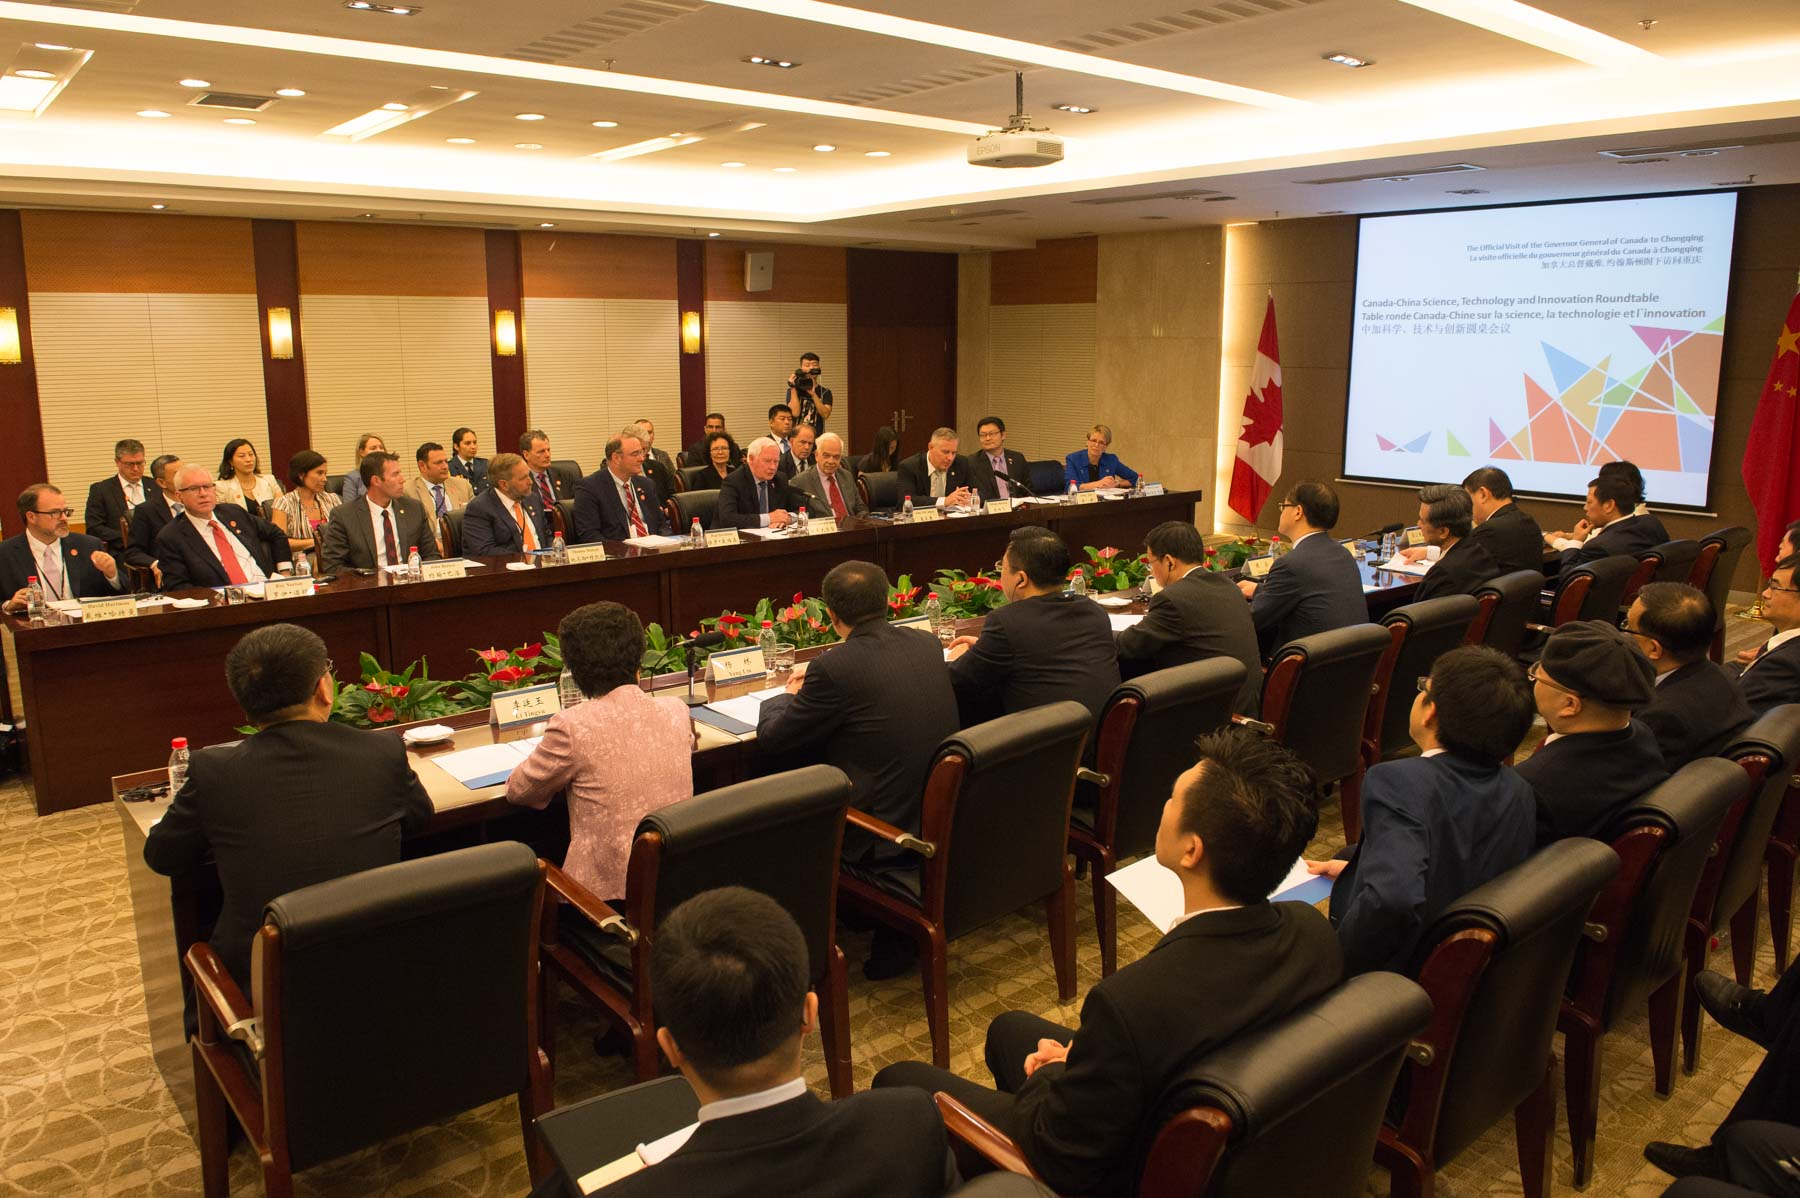 Researchers from both Chinese and Canadian universities were also present to share their expertise and to discuss potential commercialization opportunities arising from these Canada-China collaborations.